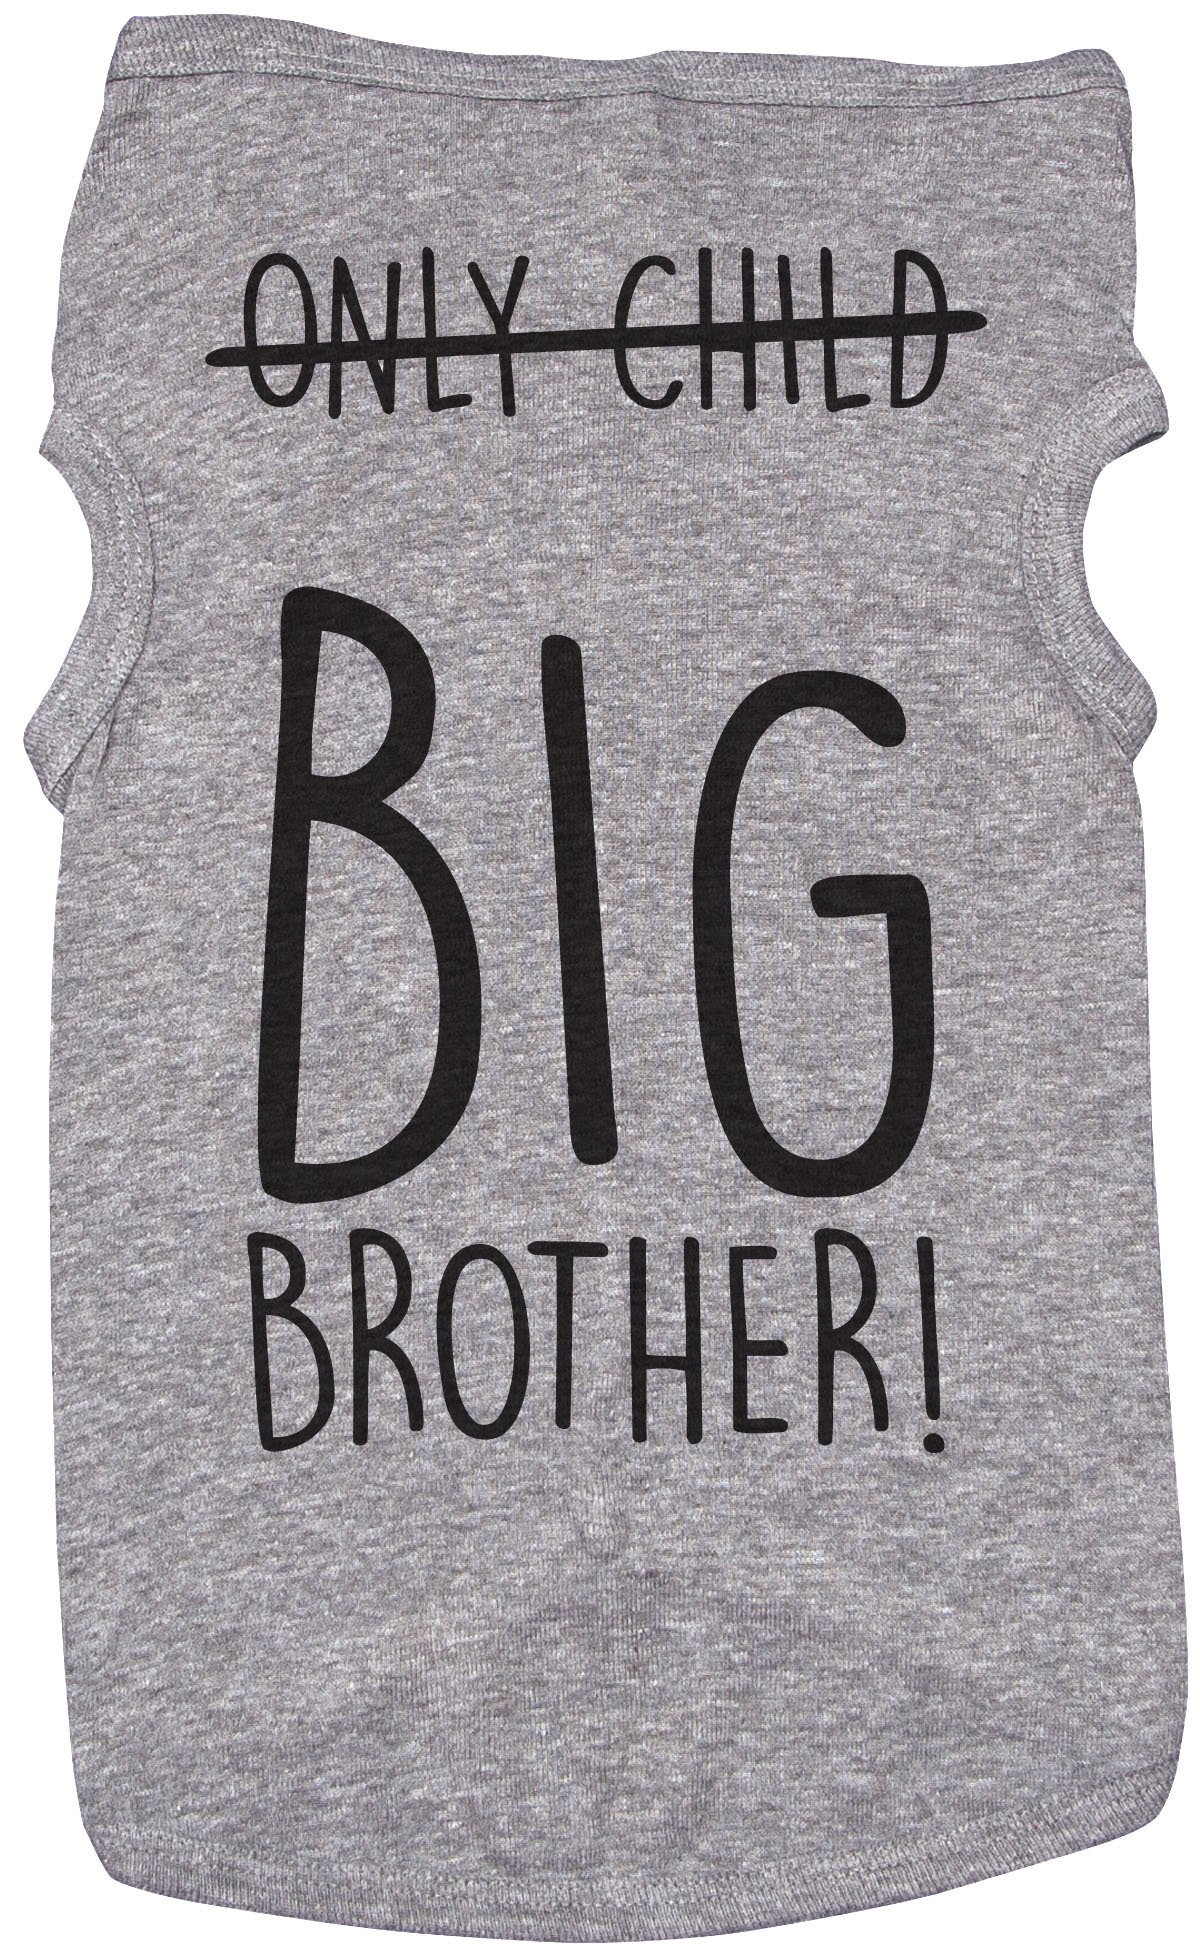 Big Bro Shirt for Dogs/ONLY Child, Big Brother/Grey Puppy Tee (2XL) by Baffle